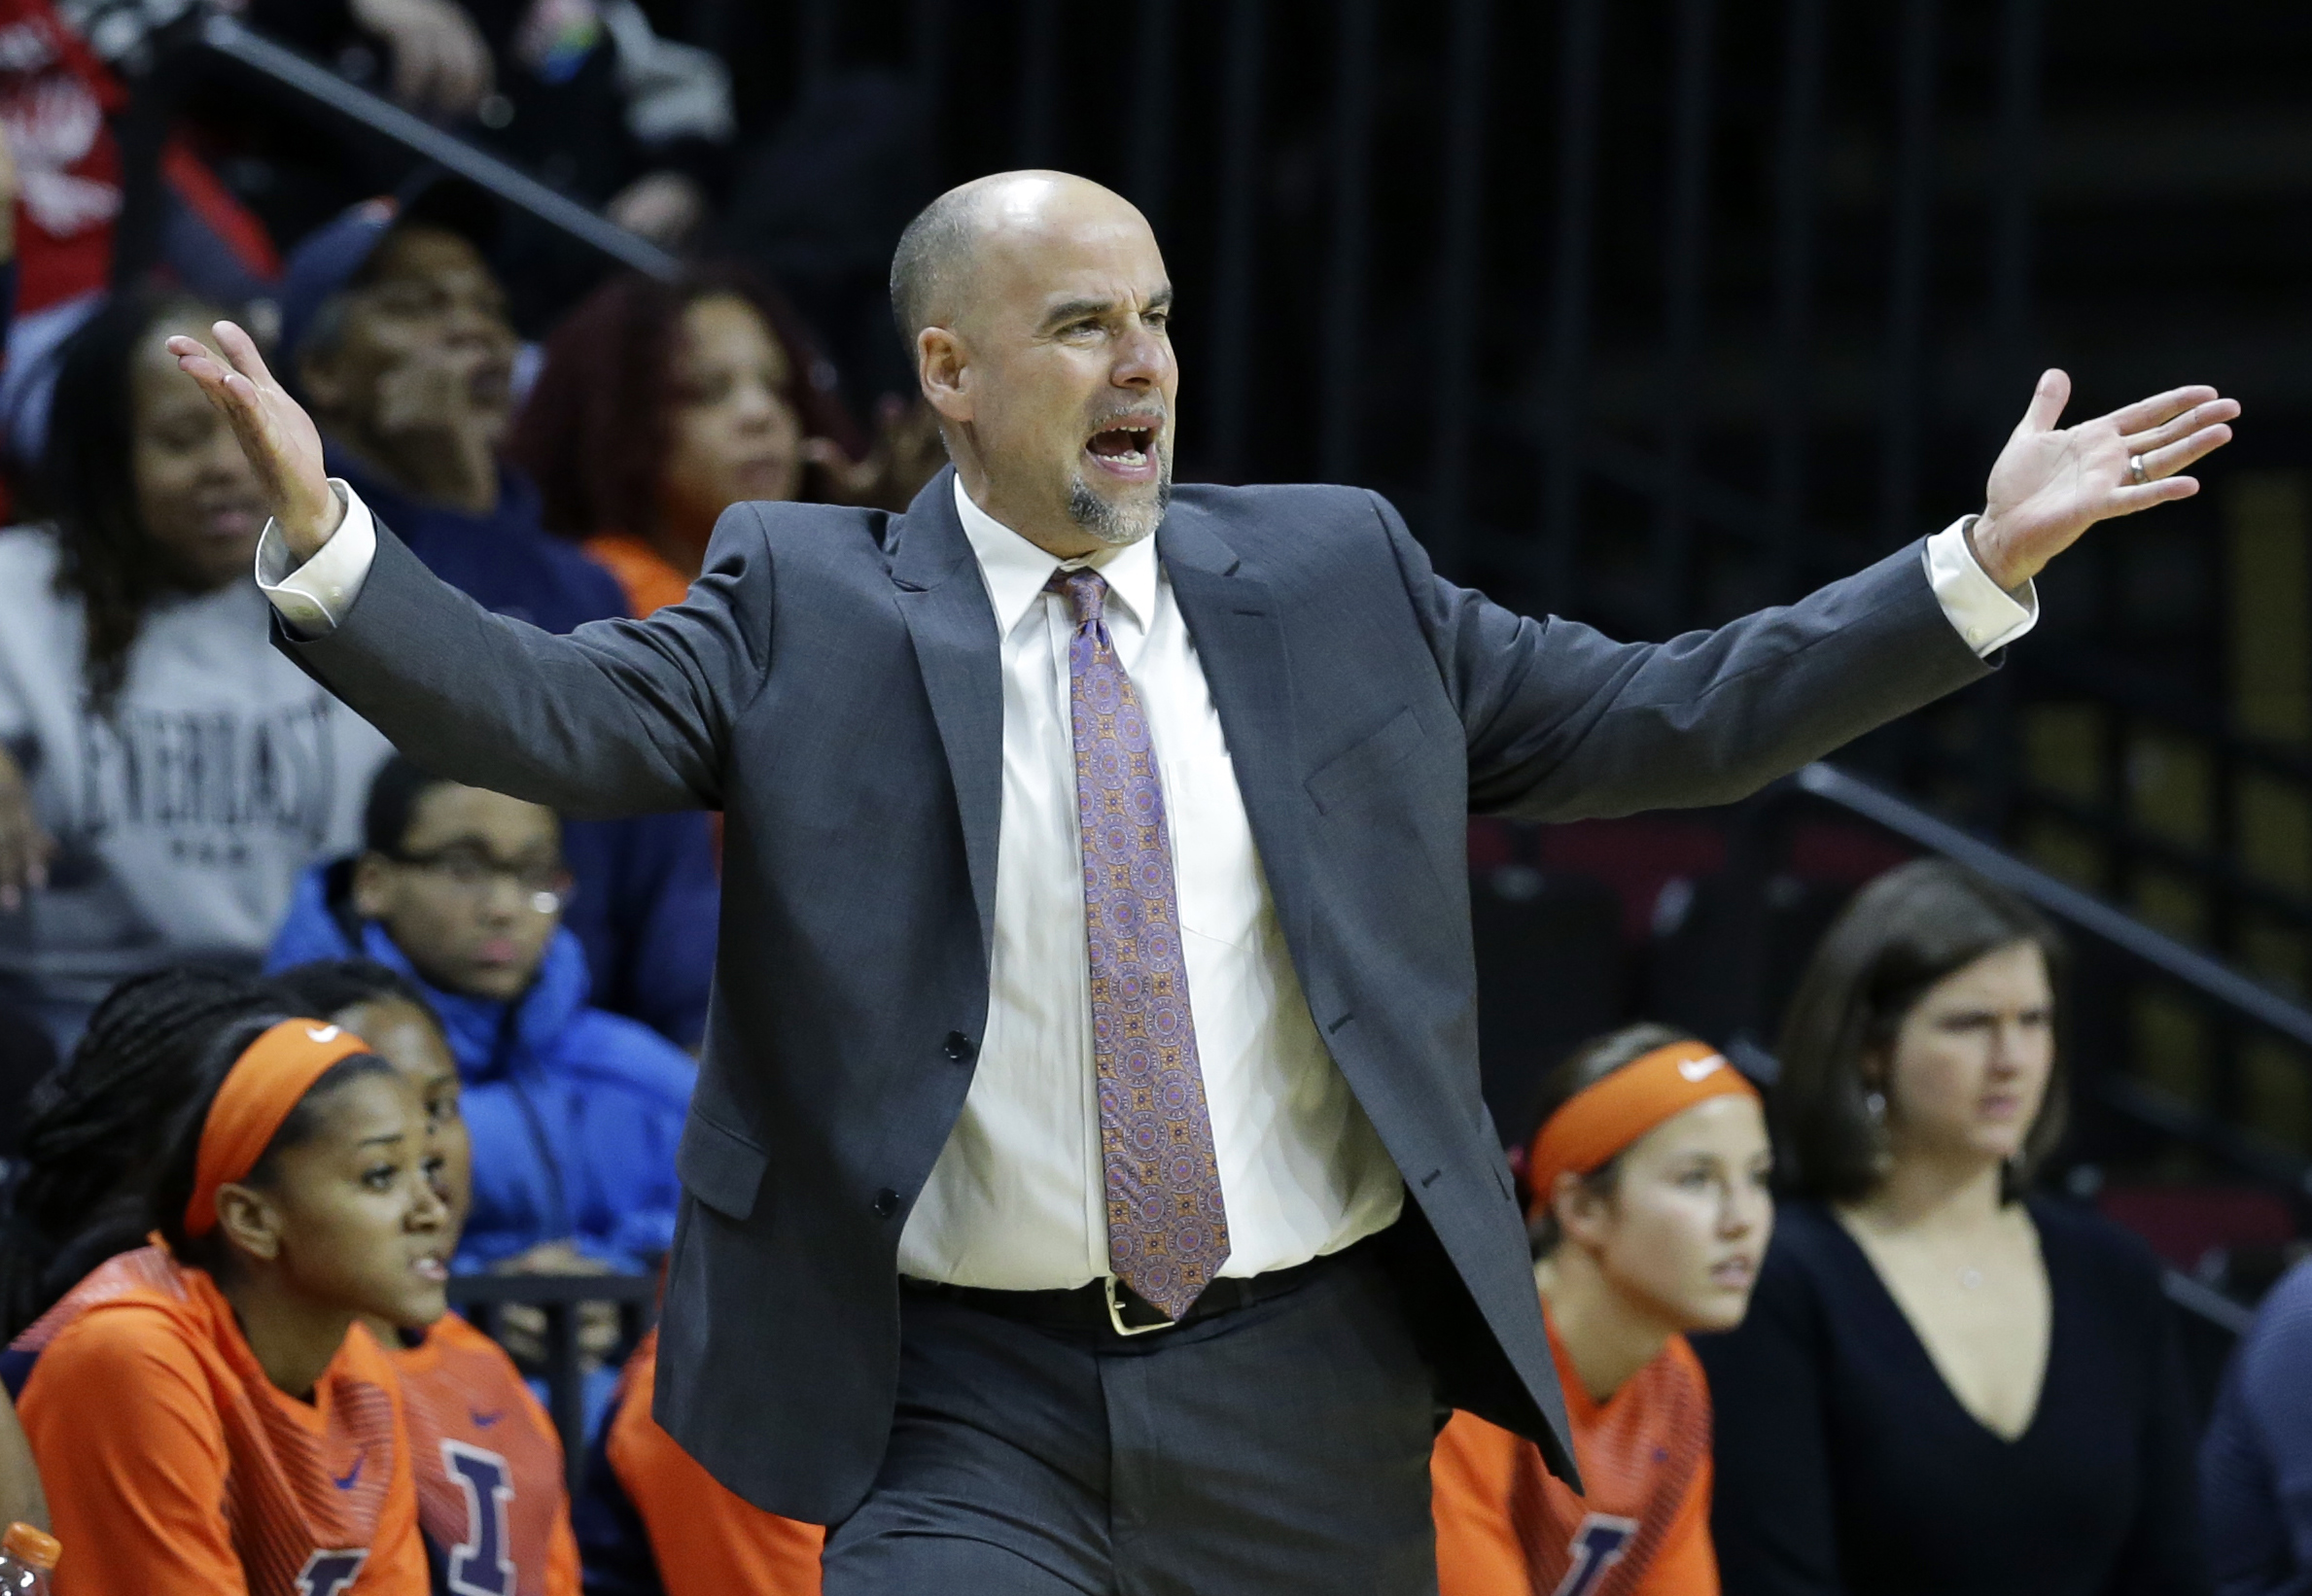 Illinois coach wants program to reflect him after troubles